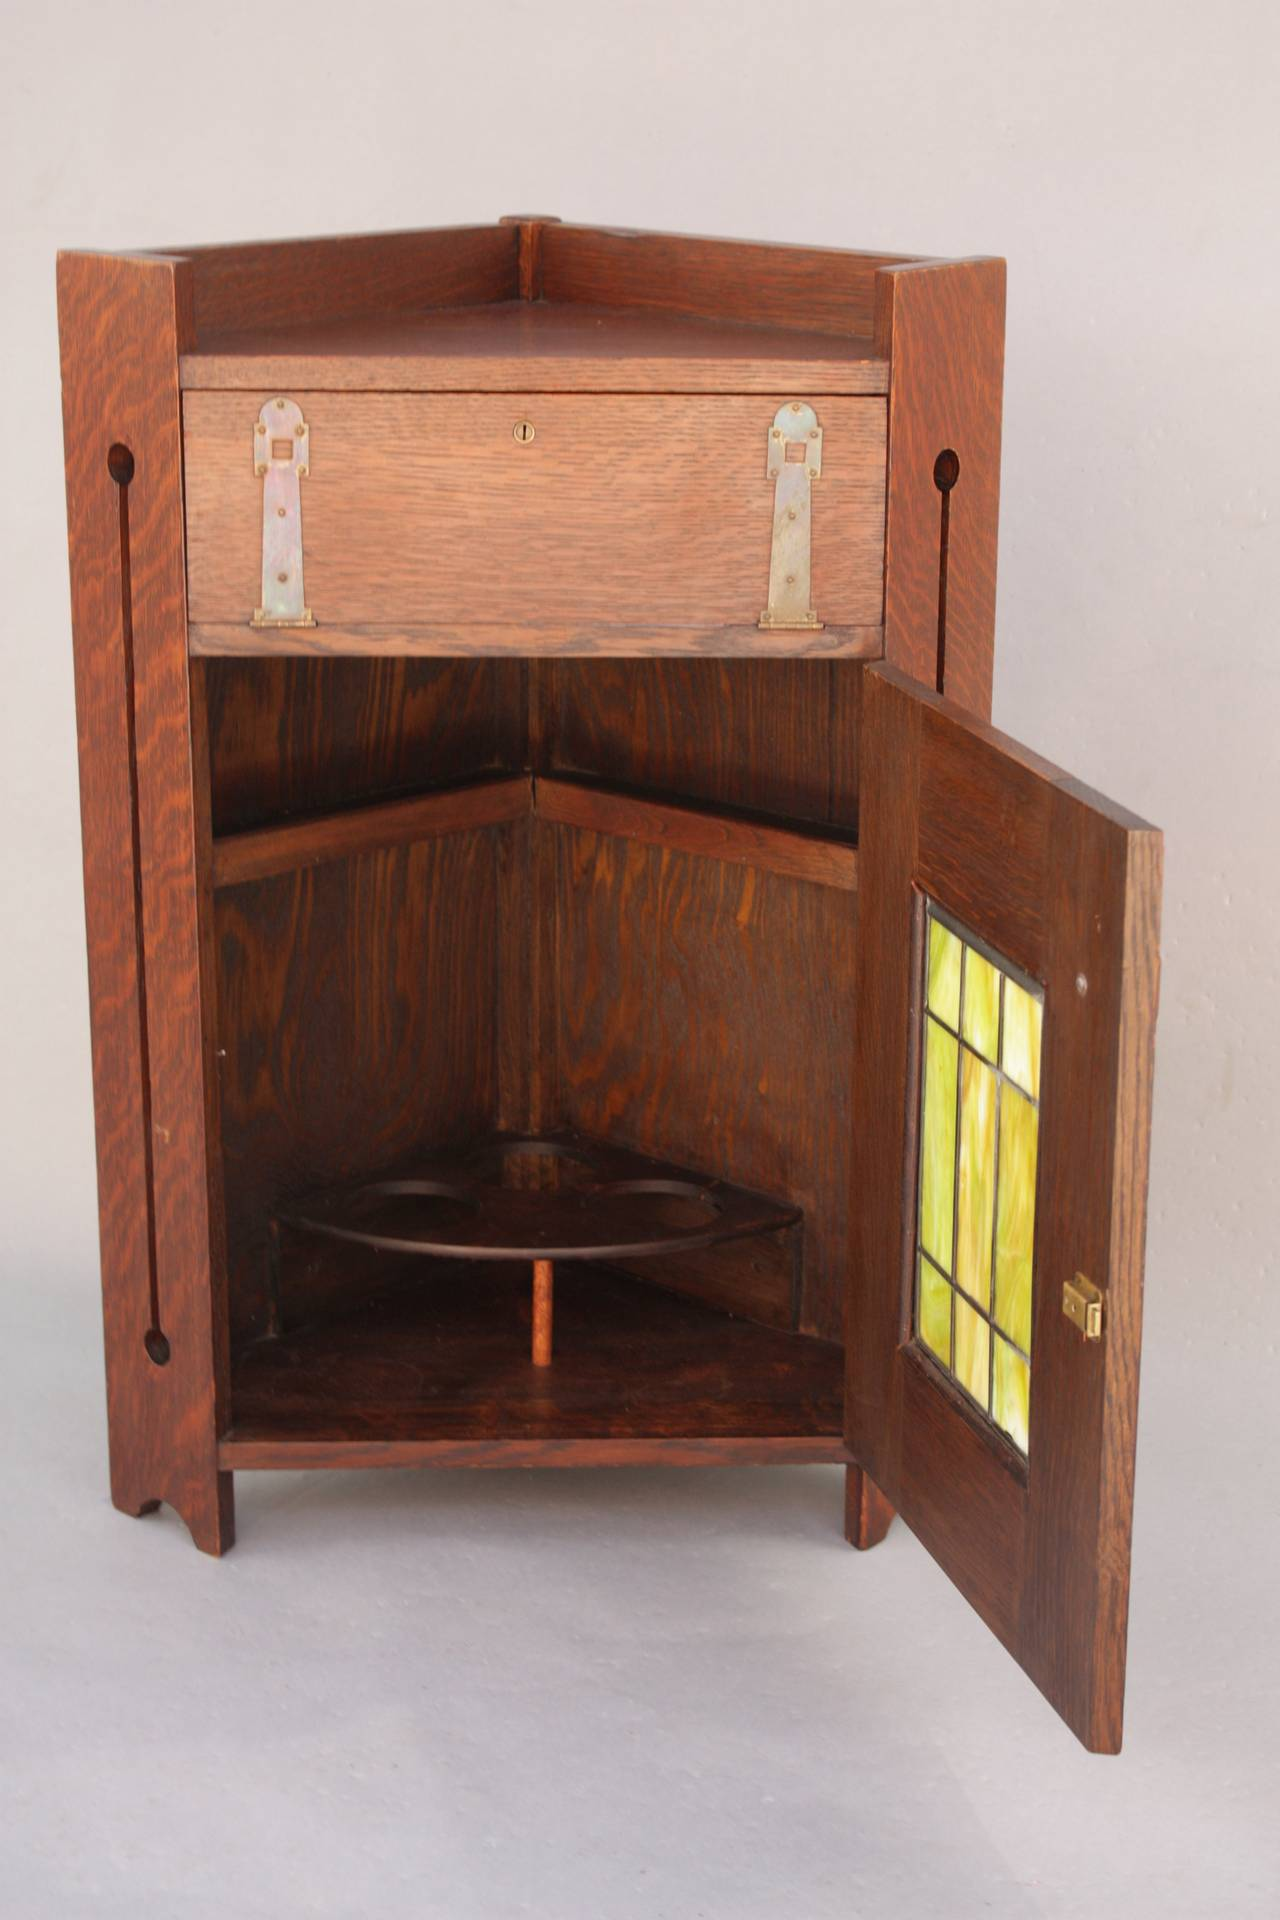 Antique arts and crafts lakeside craft shops humidor or for Furniture gallery lakeside